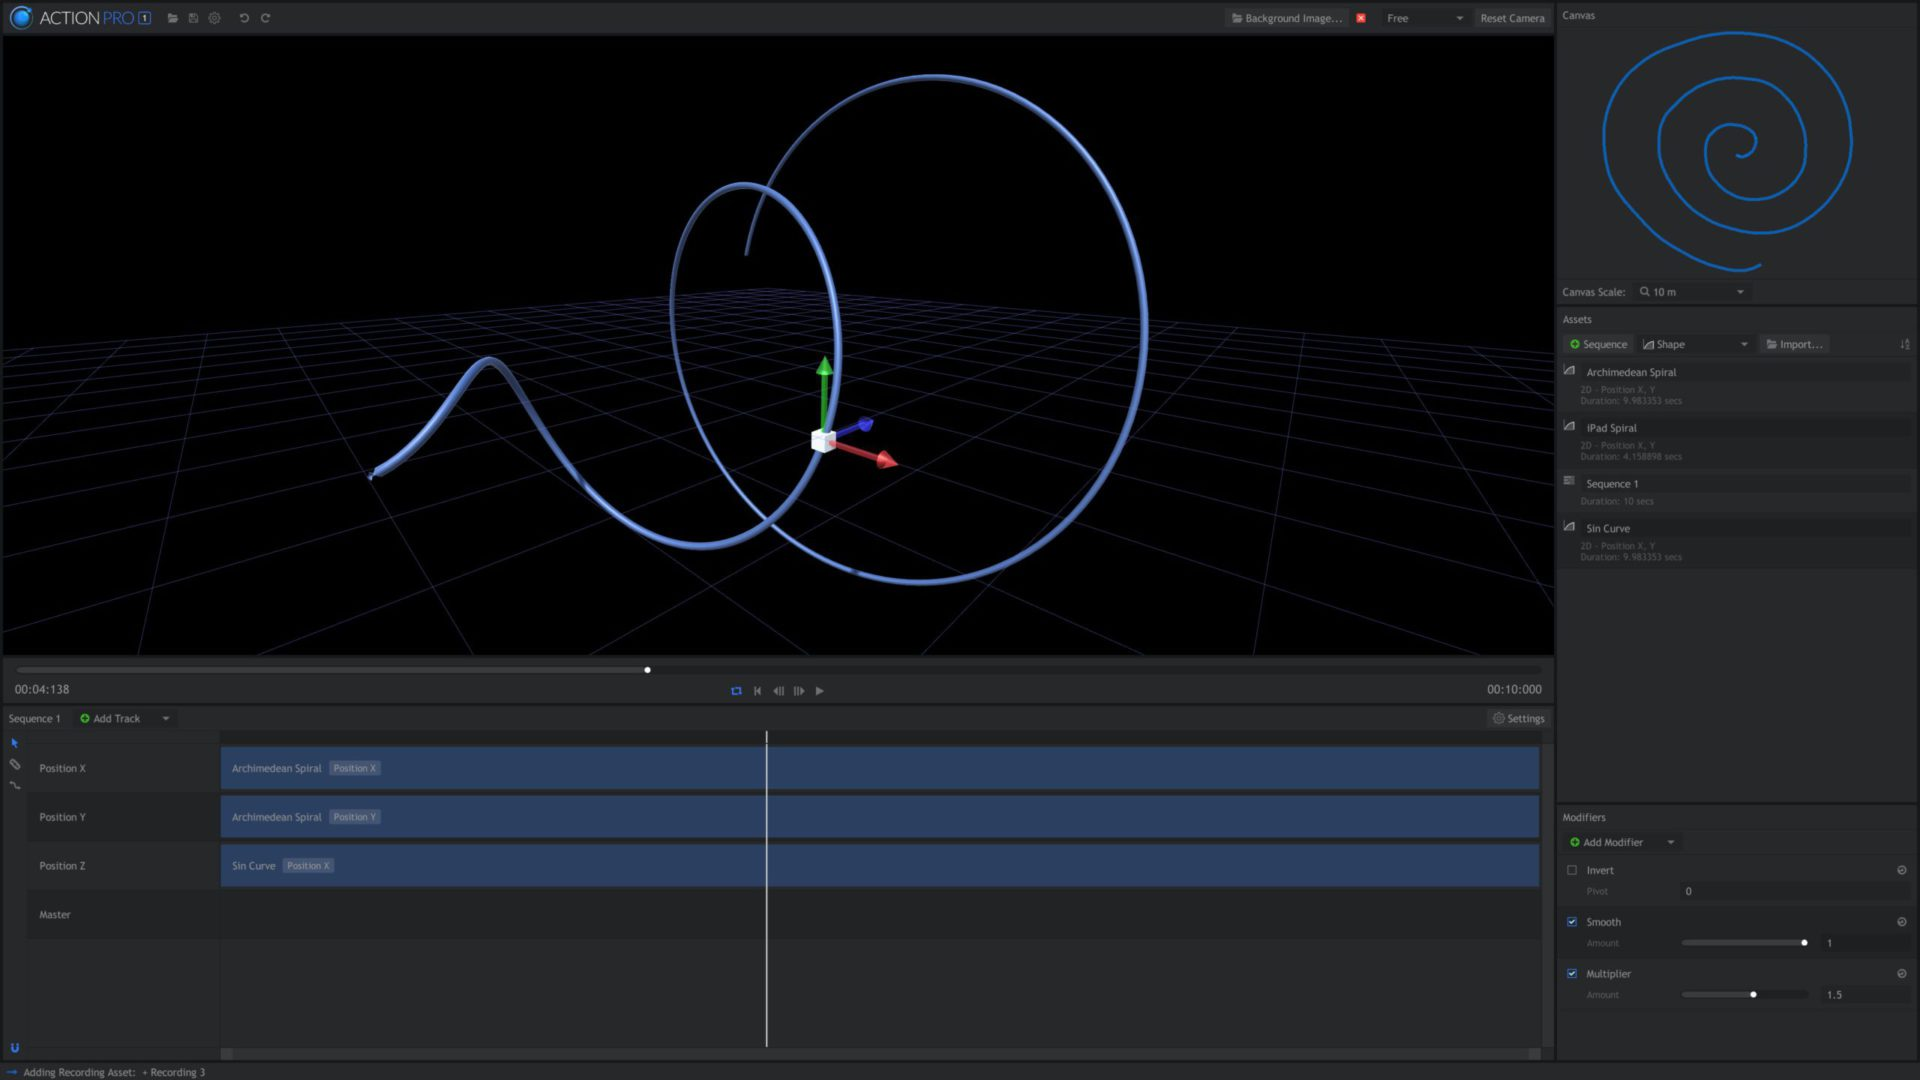 Action Pro interface - motion capture software